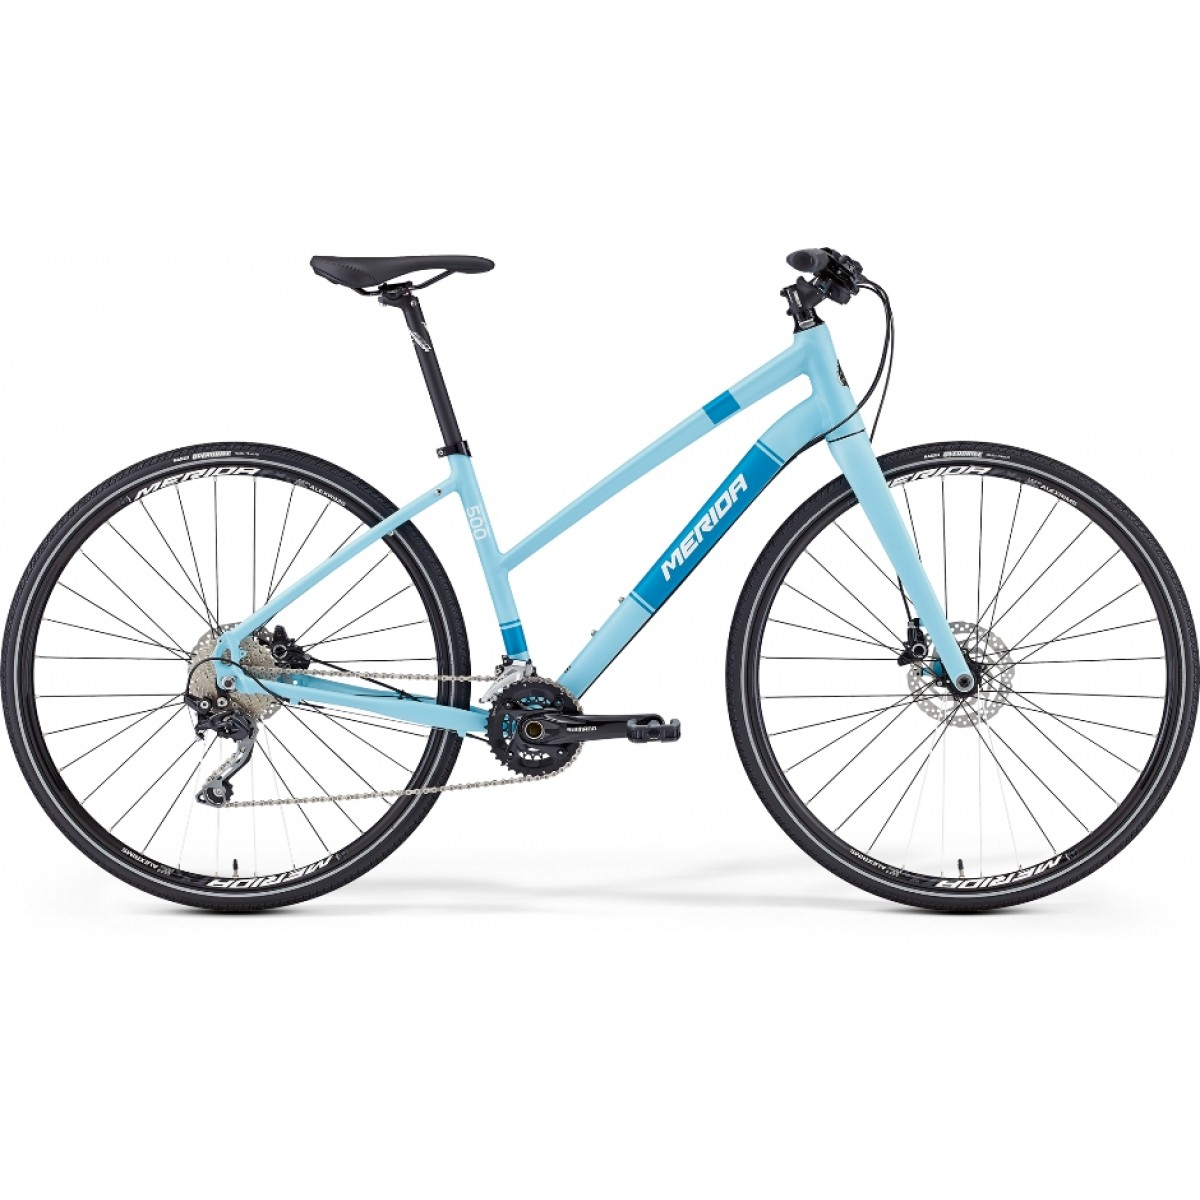 Image result for merida hybrid cycles